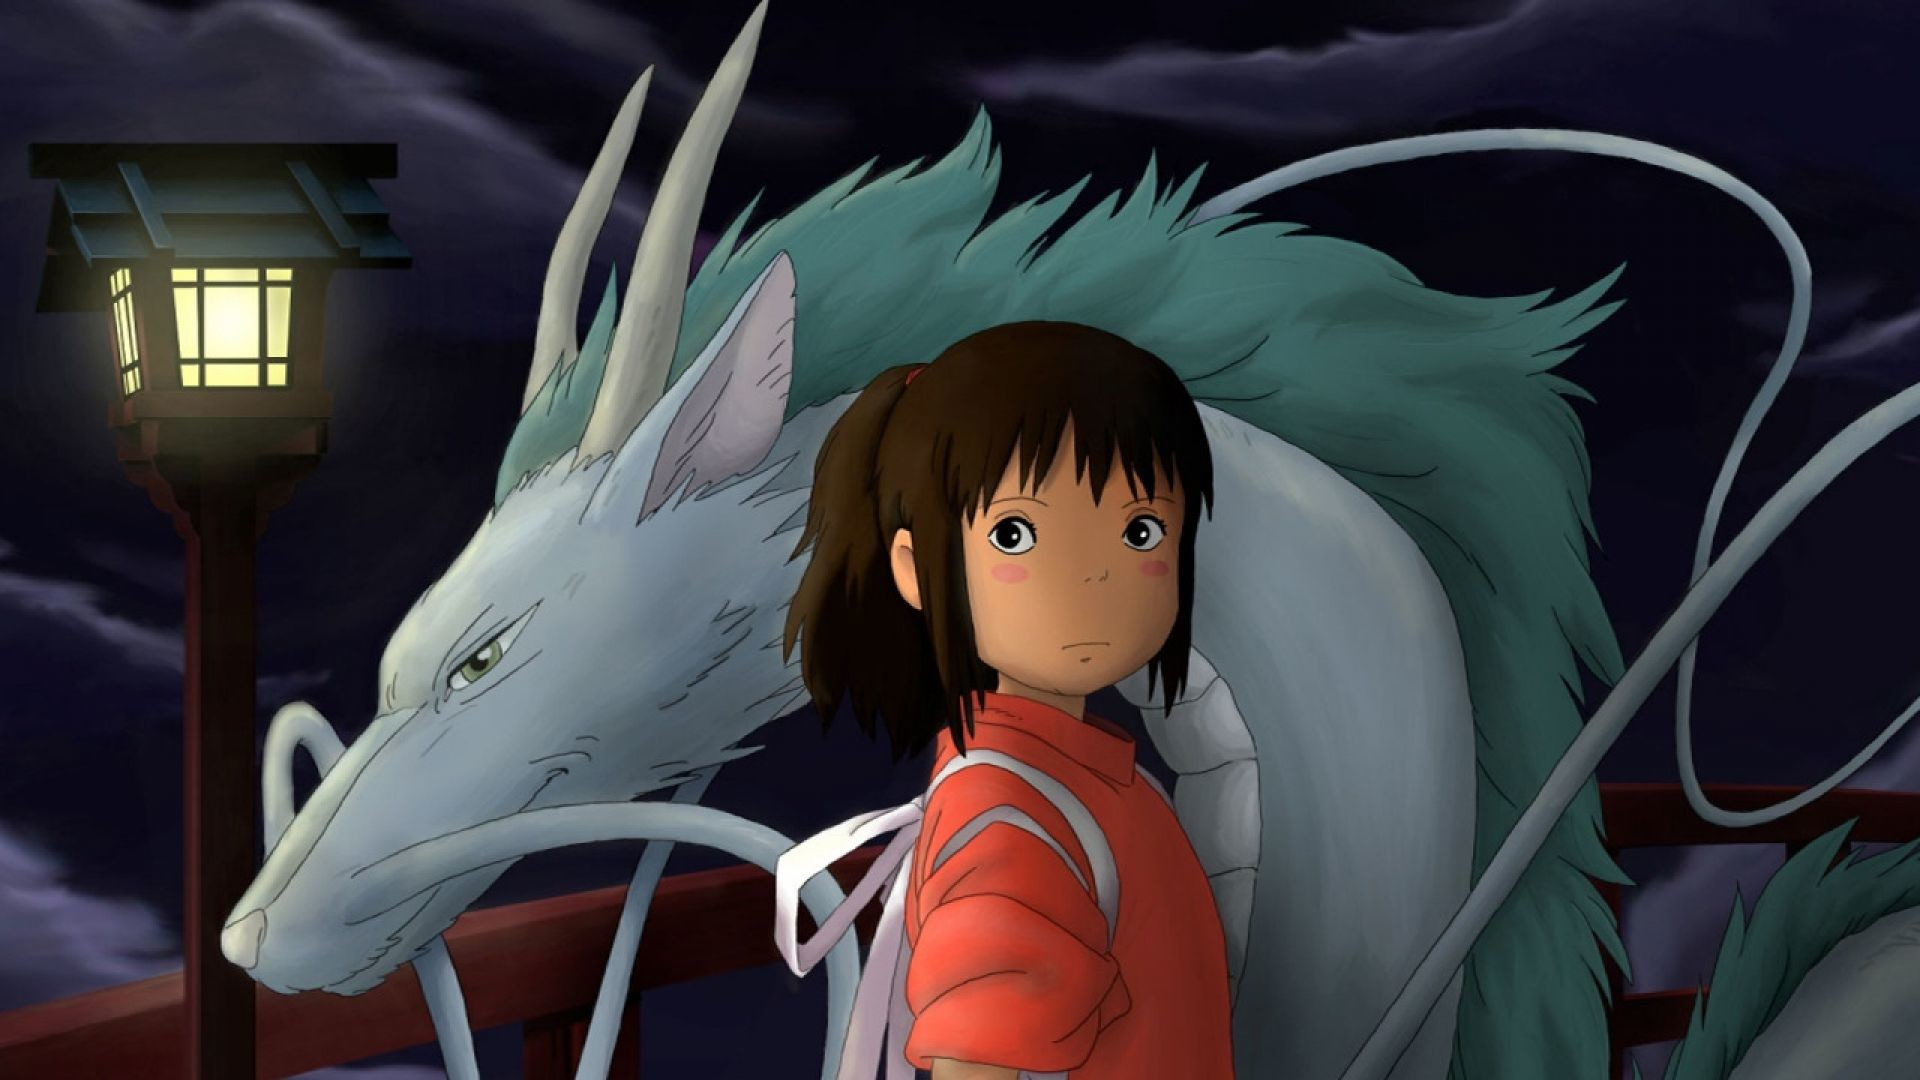 Spirited Away Film Cartoon Pictures For iMac – Cartoons Wallpapers